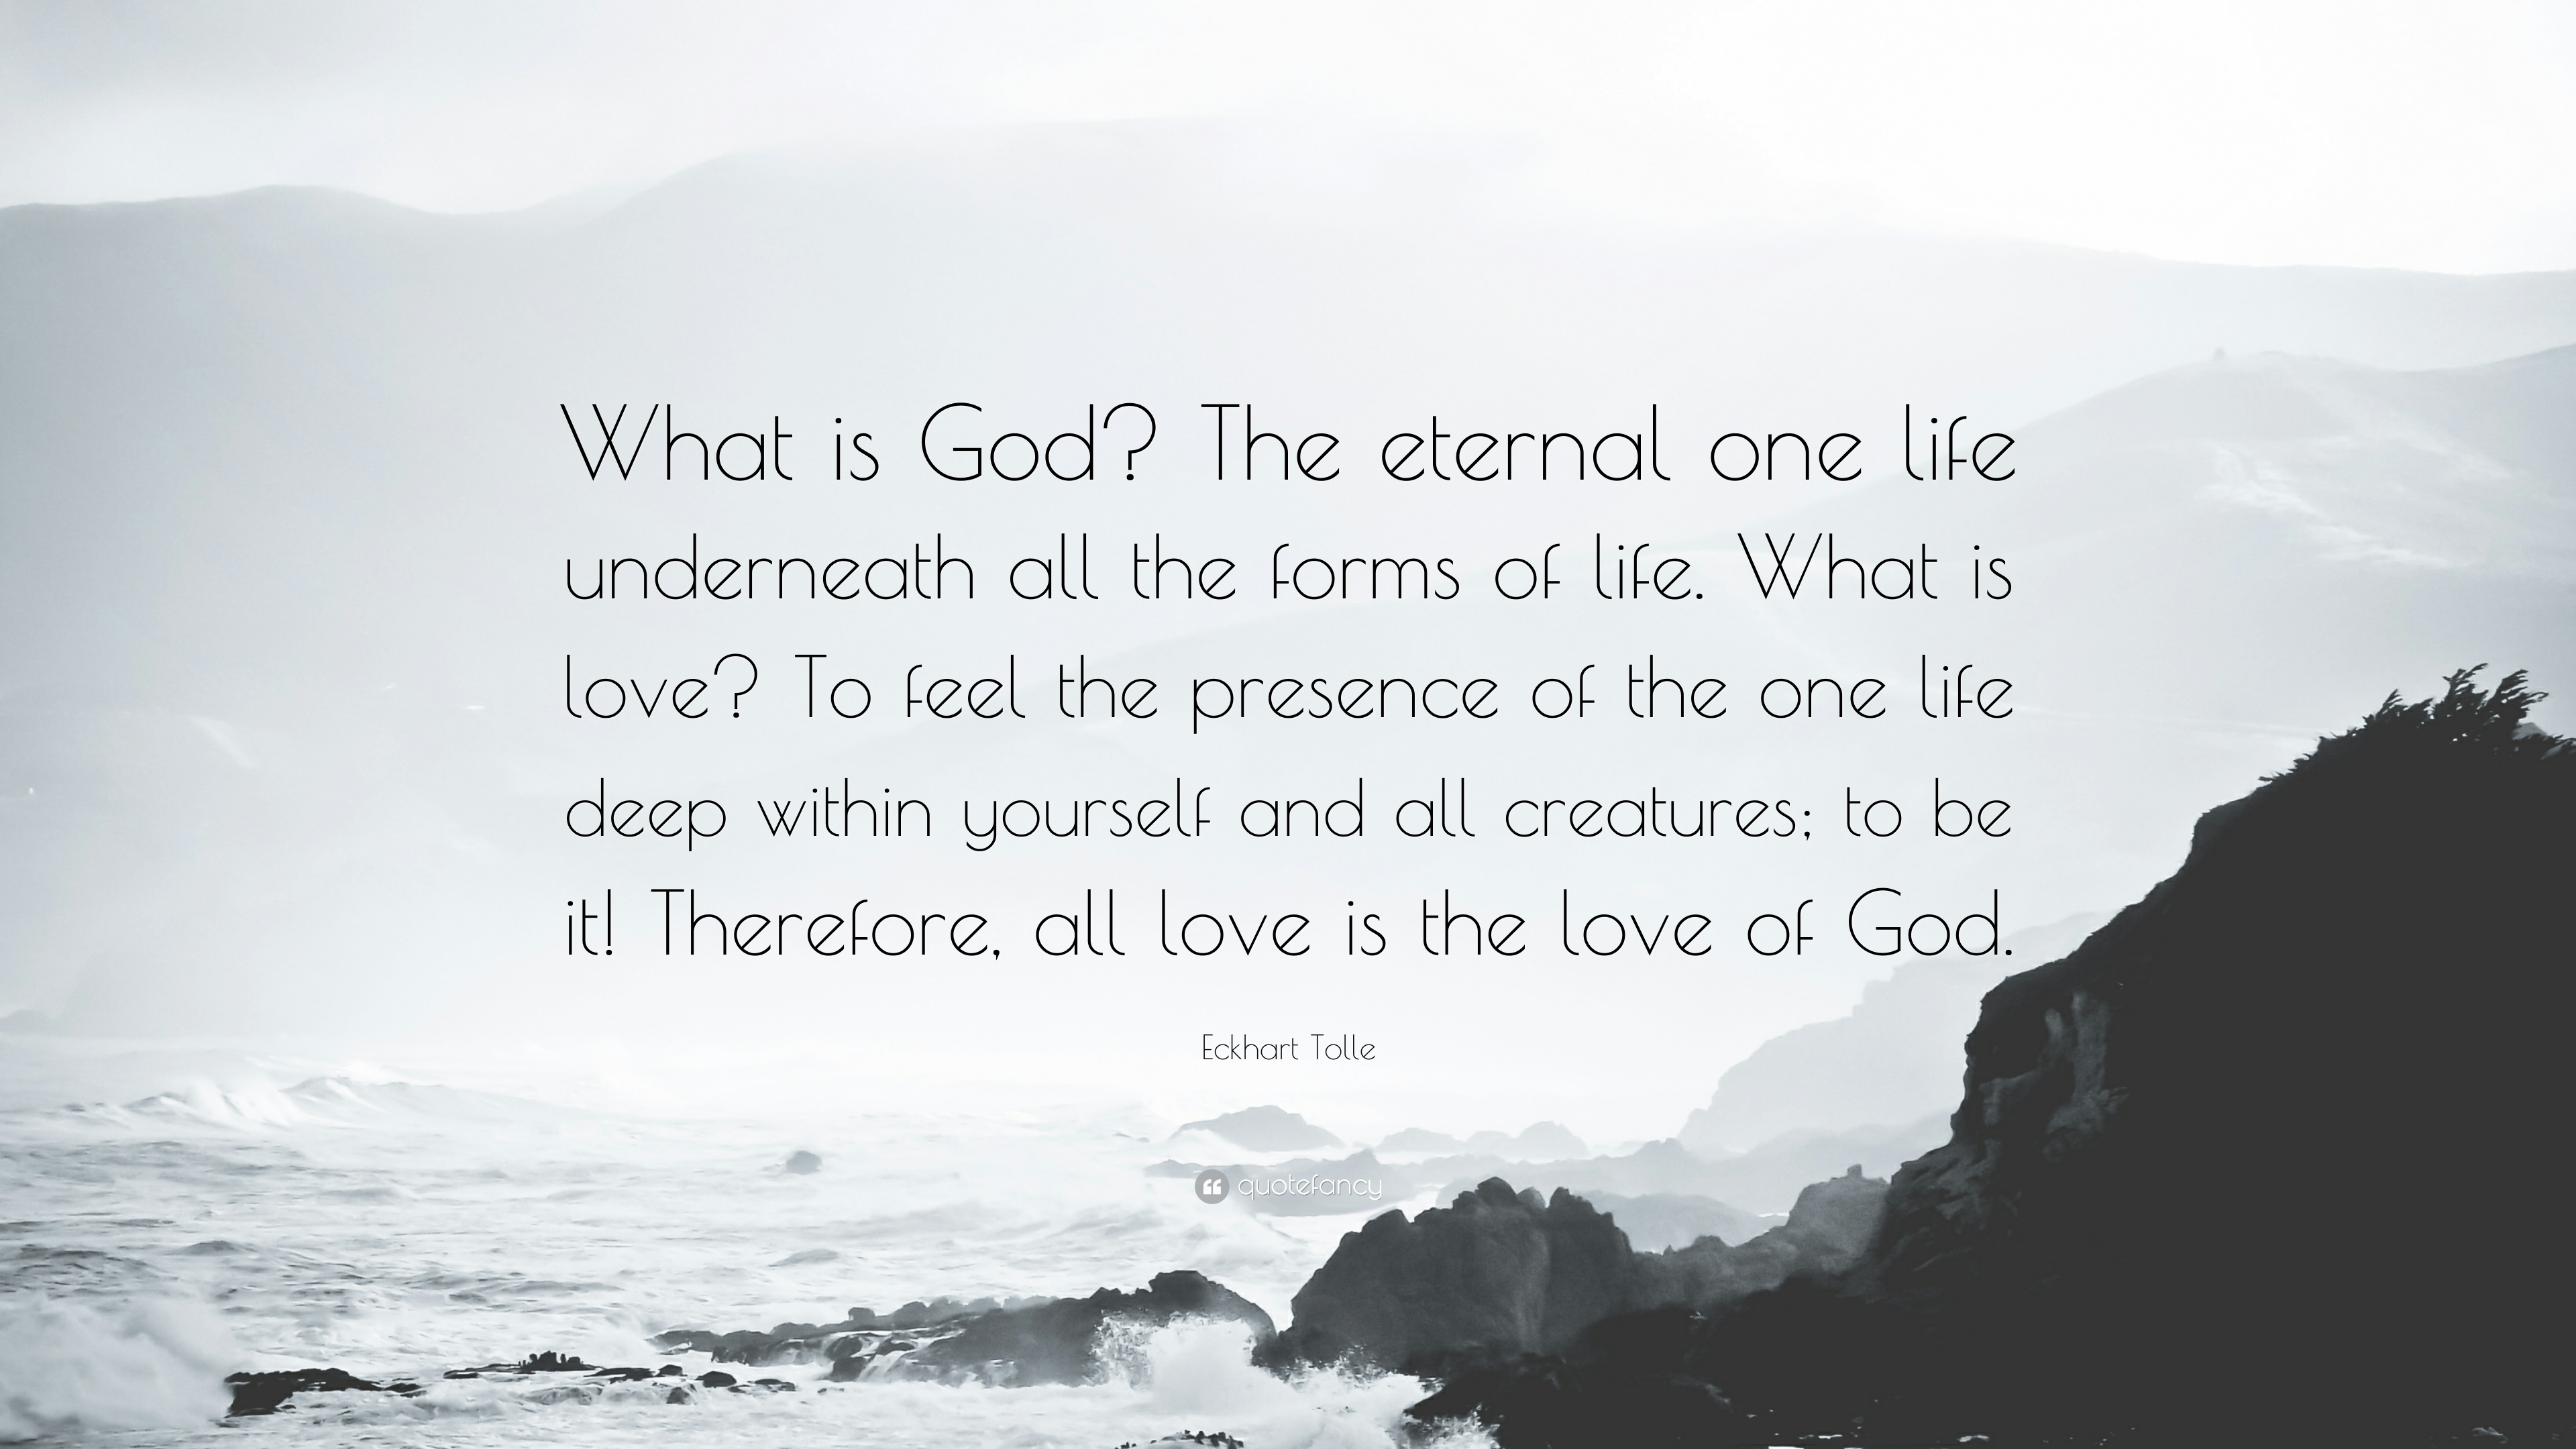 Eckhart Tolle Quote What Is God The Eternal One Life Underneath